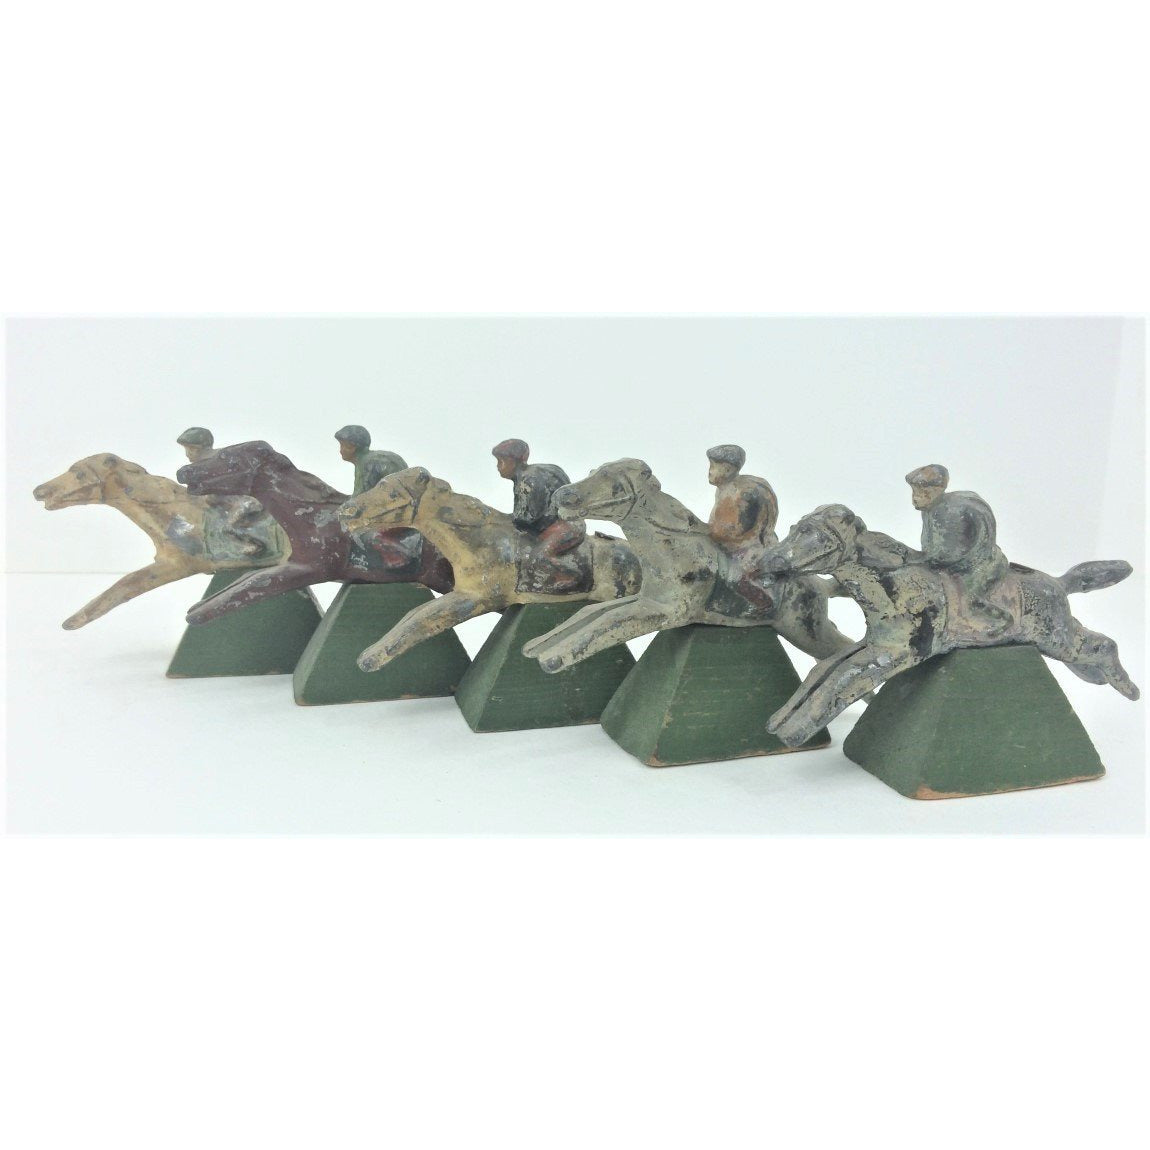 Set of 5 English Lead Board Game Jockeys on Wood Plinths